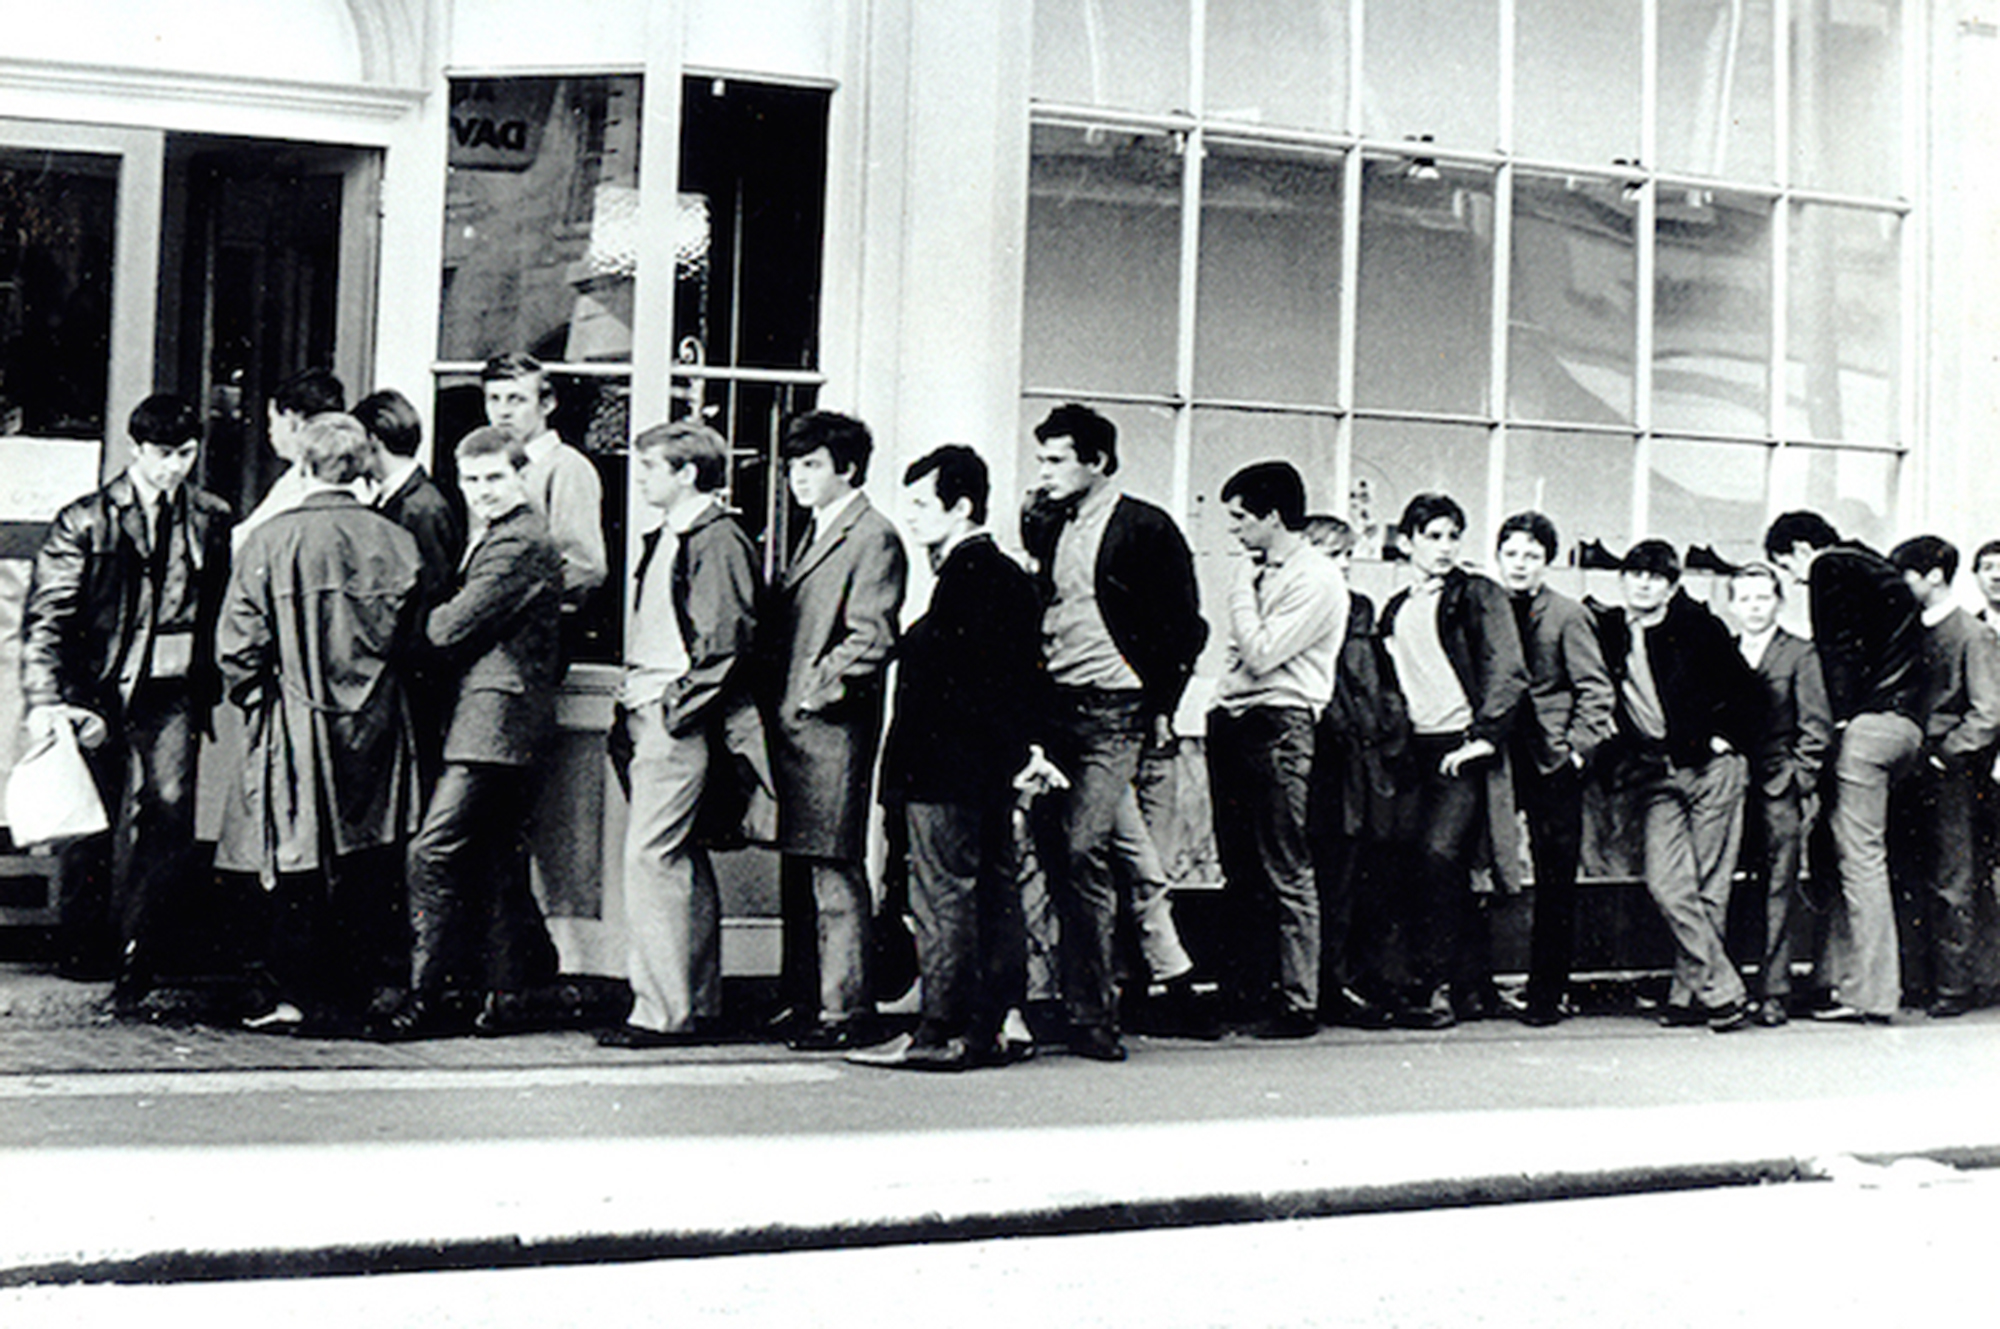 Customers queuing for the iconic 'Beatle boot' at Anello & Davide (1961) - Image courtesy of Anello & Davide   www.handmadeshoes.co.uk